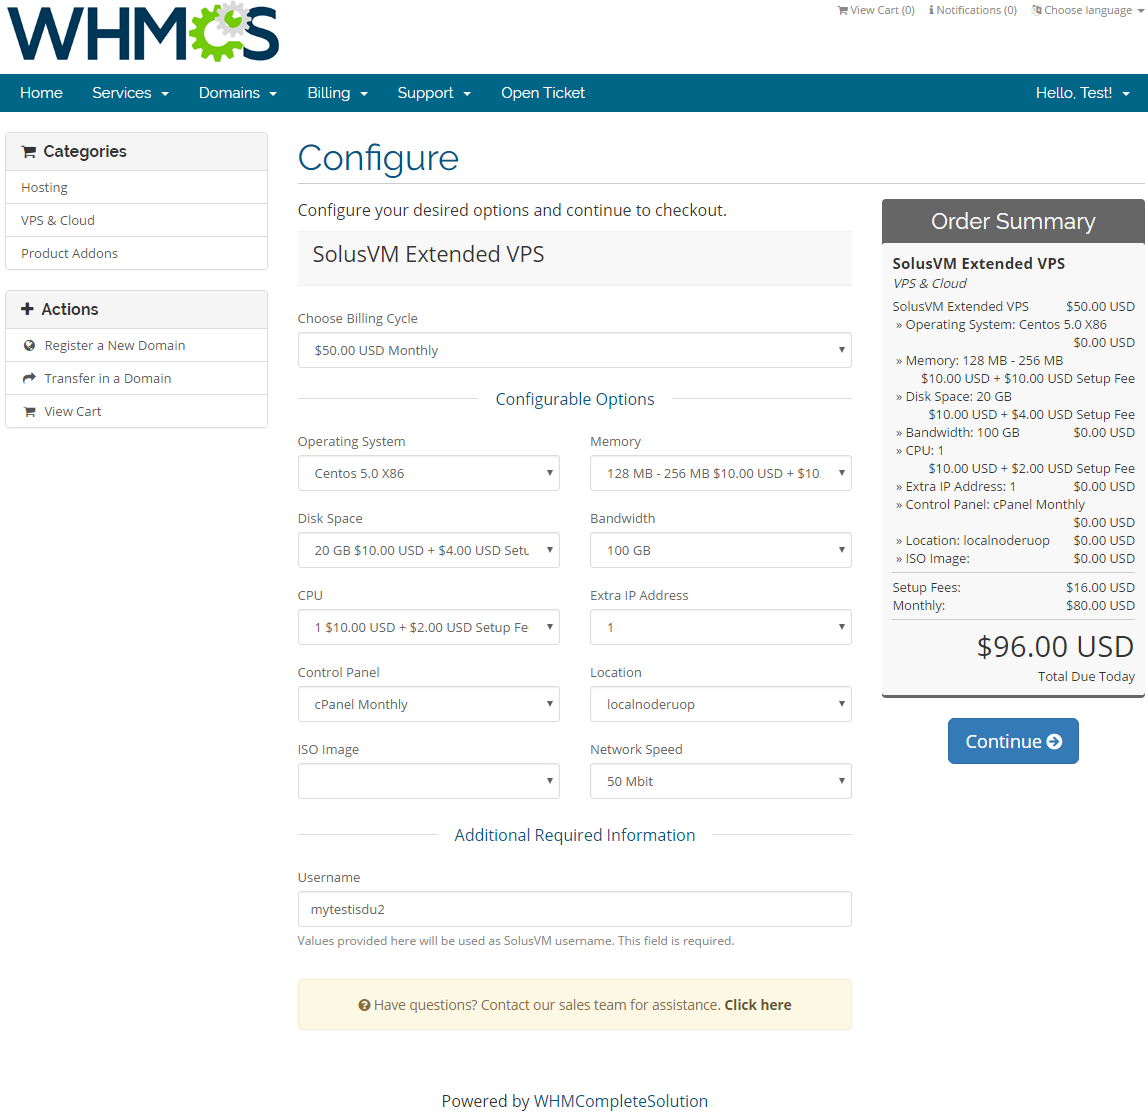 SolusVM Extended VPS For WHMCS: Screen 6